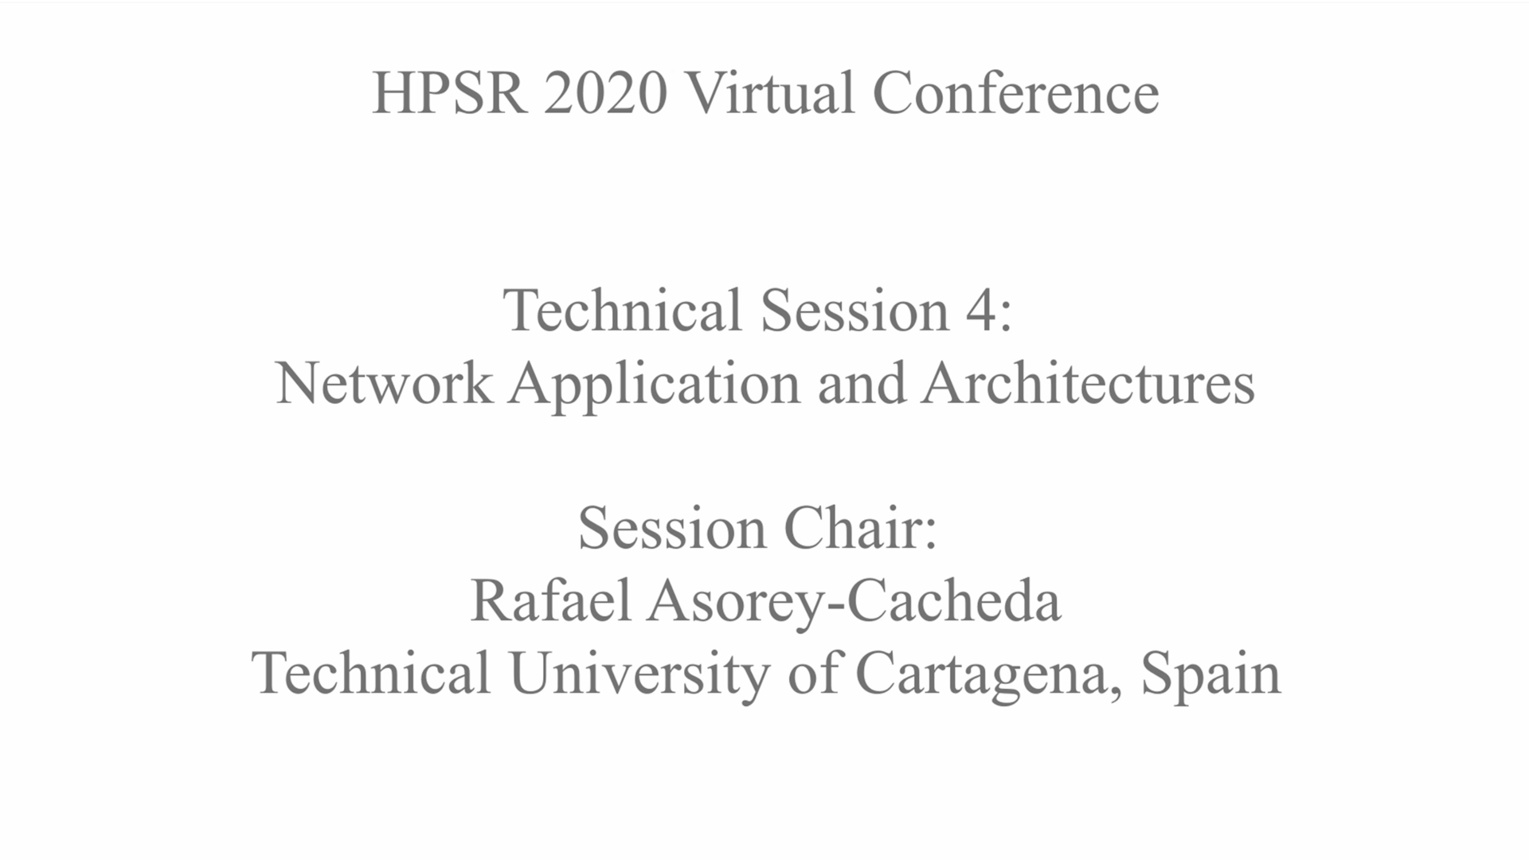 Network Applications & Architectures: Technical Session 4 - HPSR 2020 Virtual Conference